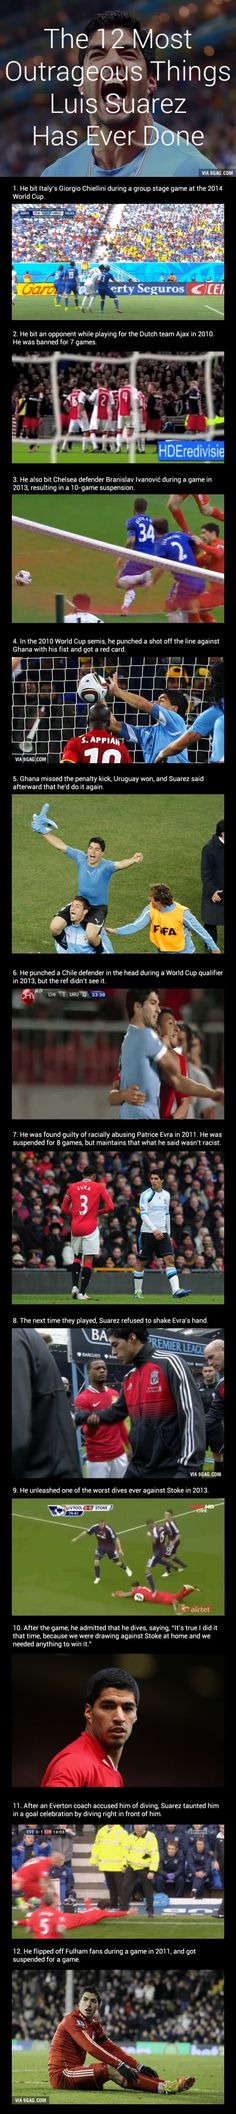 The 12 Most Outrageous Things Luis Suarez Has Ever Done